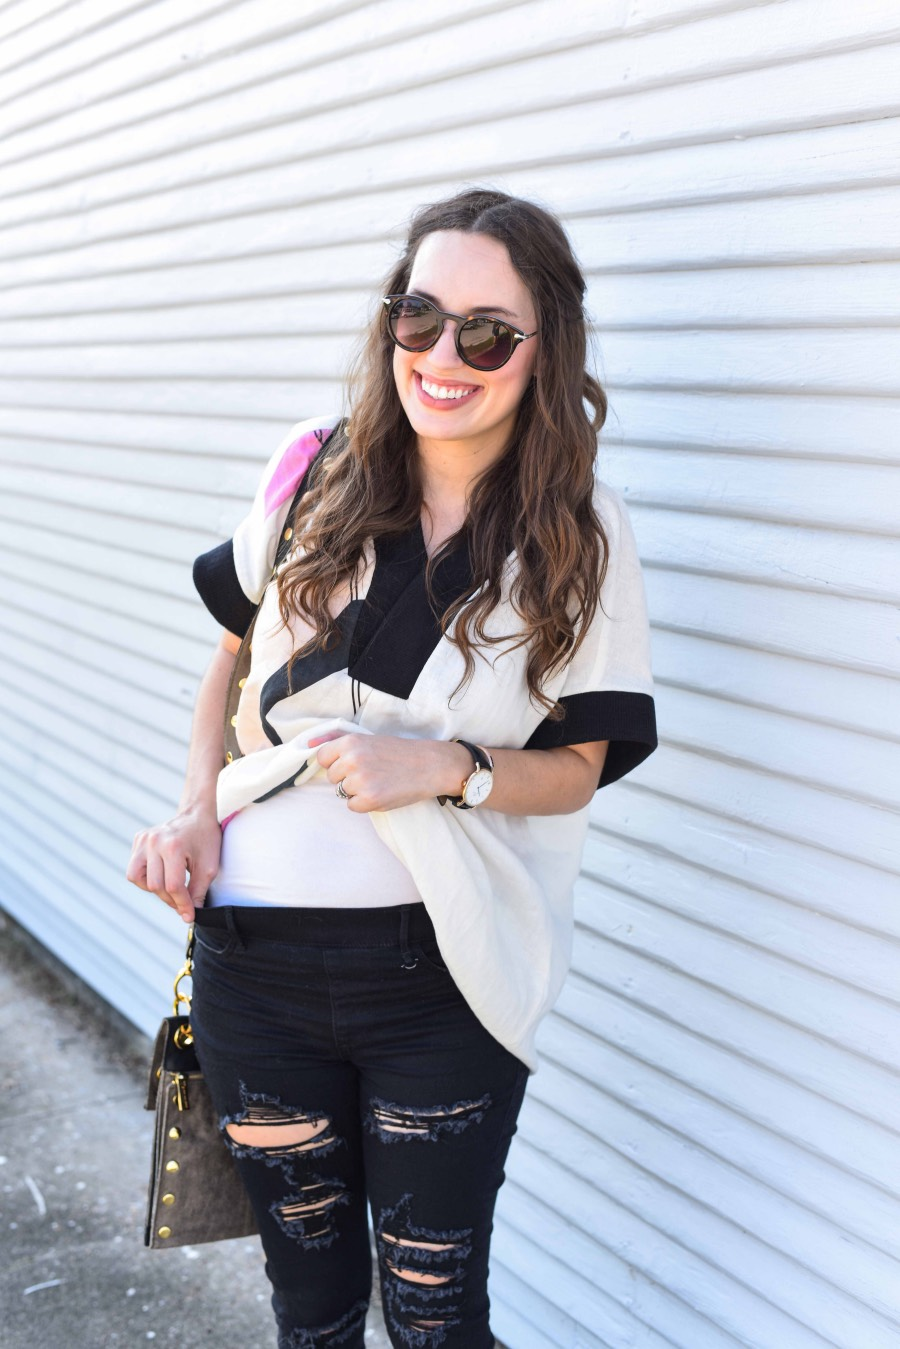 Alice of Lone Star Looking Glass shares tips on how to wear your regular jeans when you're pregnant in her True Religion jeans.